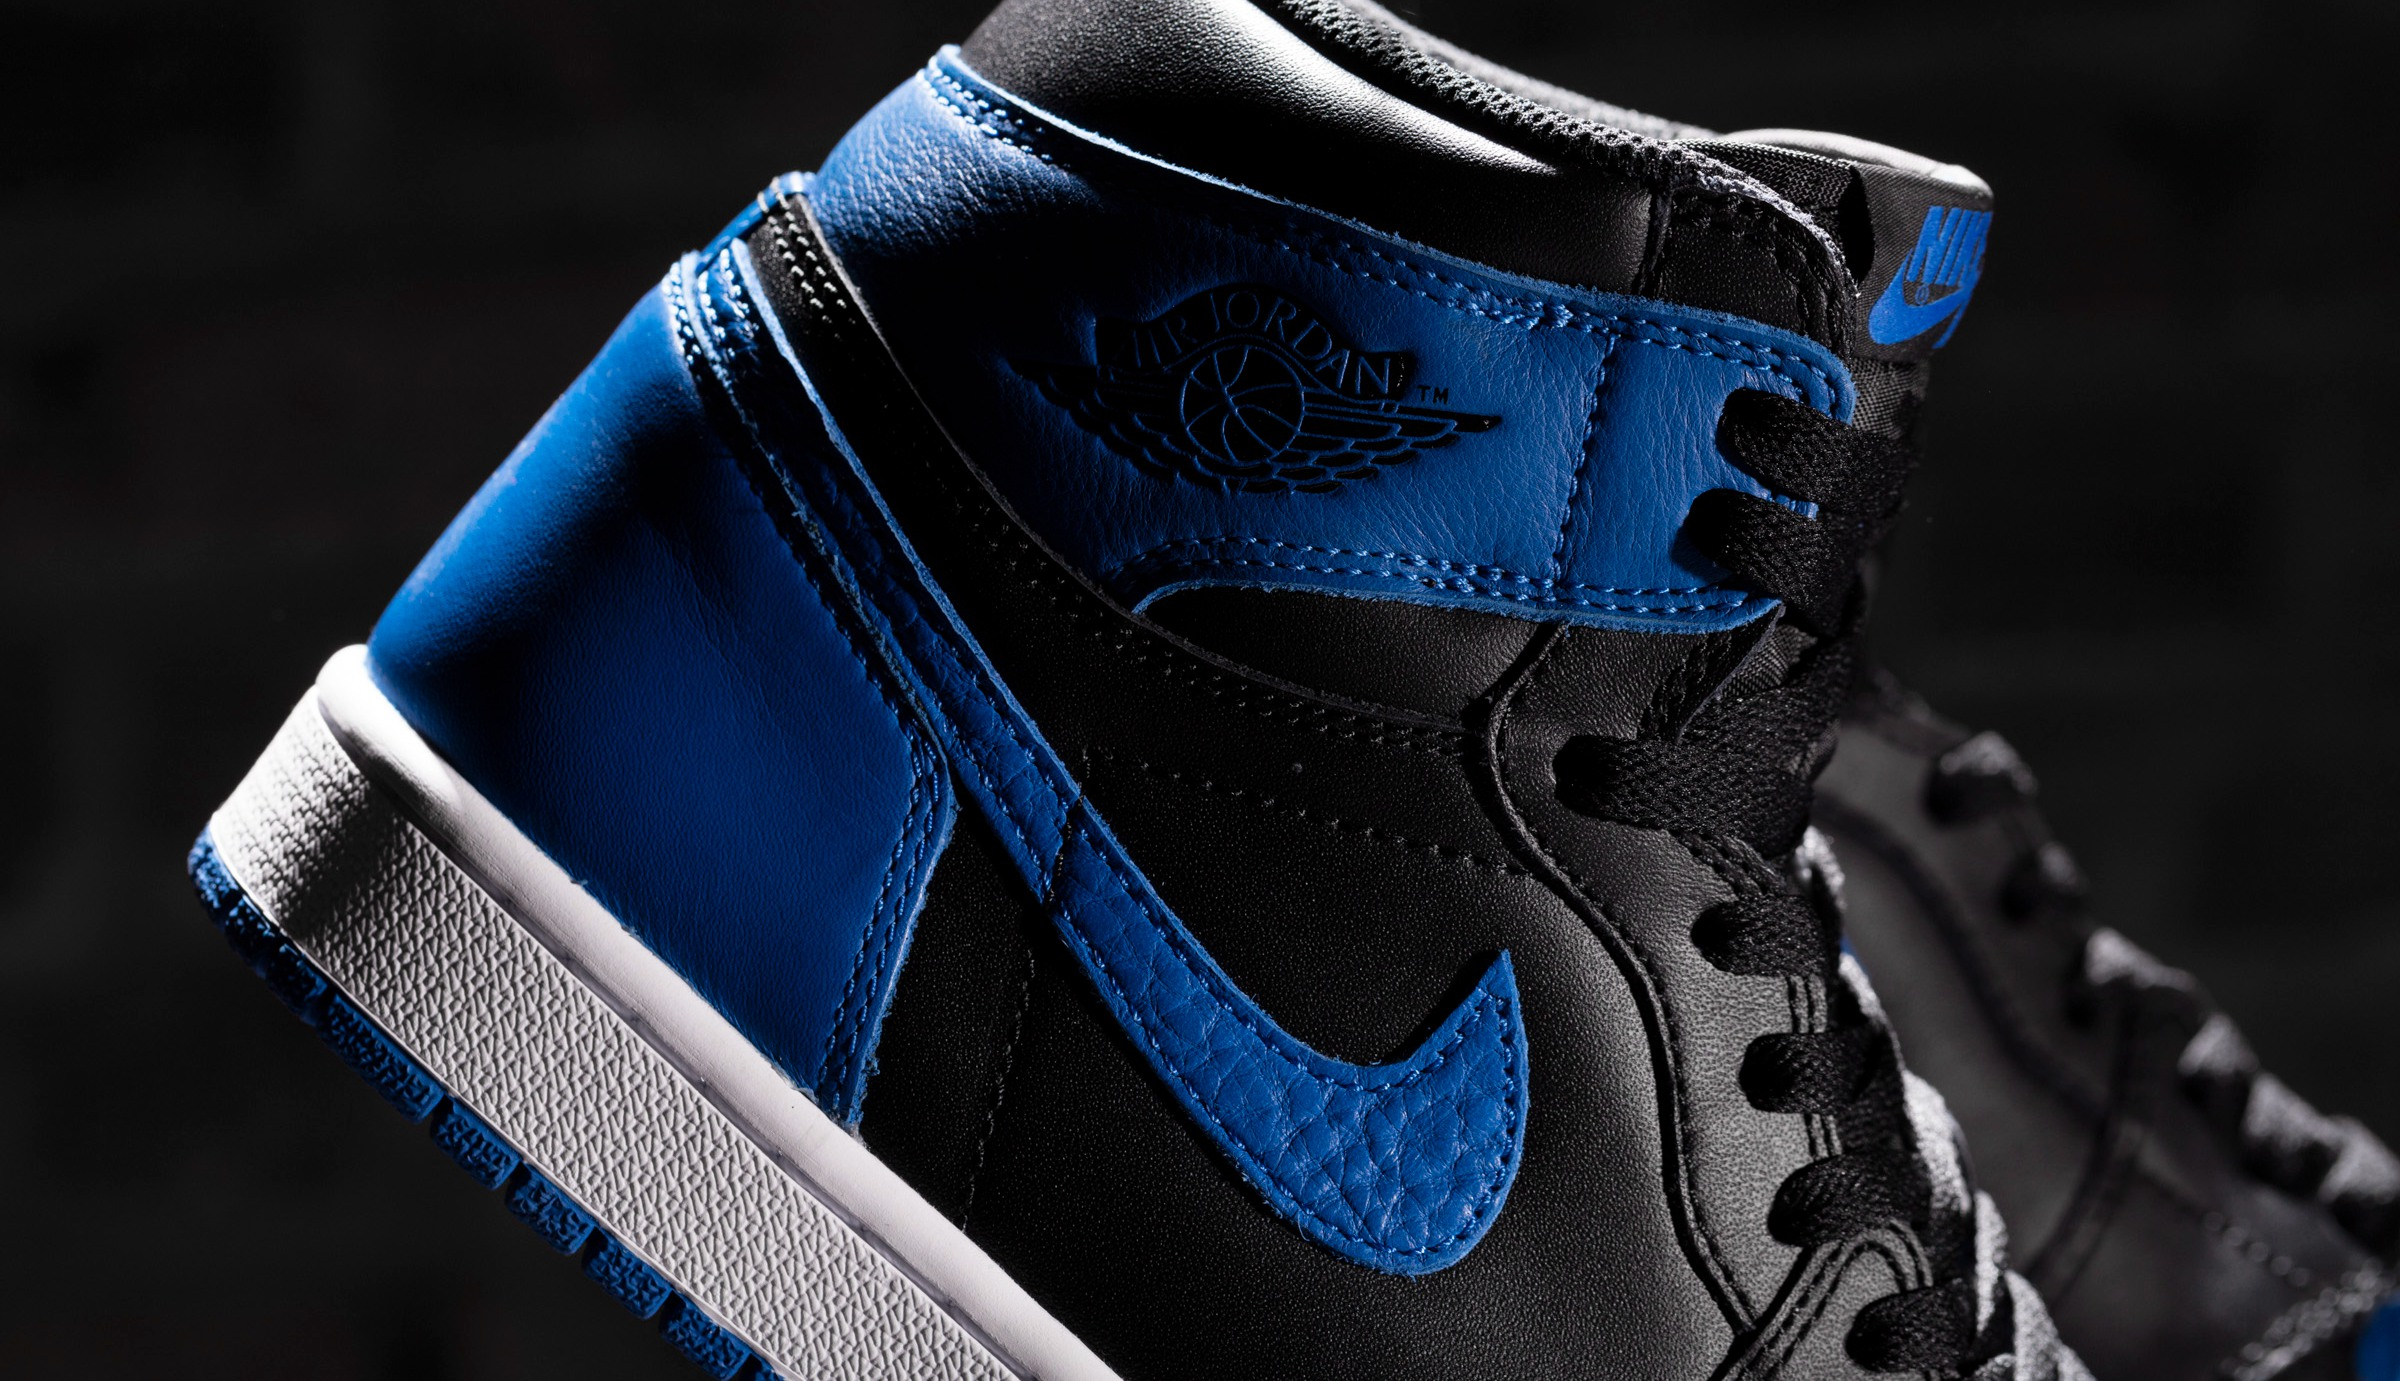 皇家蓝再临 --- Air Jordan 1 Retro High OG Royal 前瞻